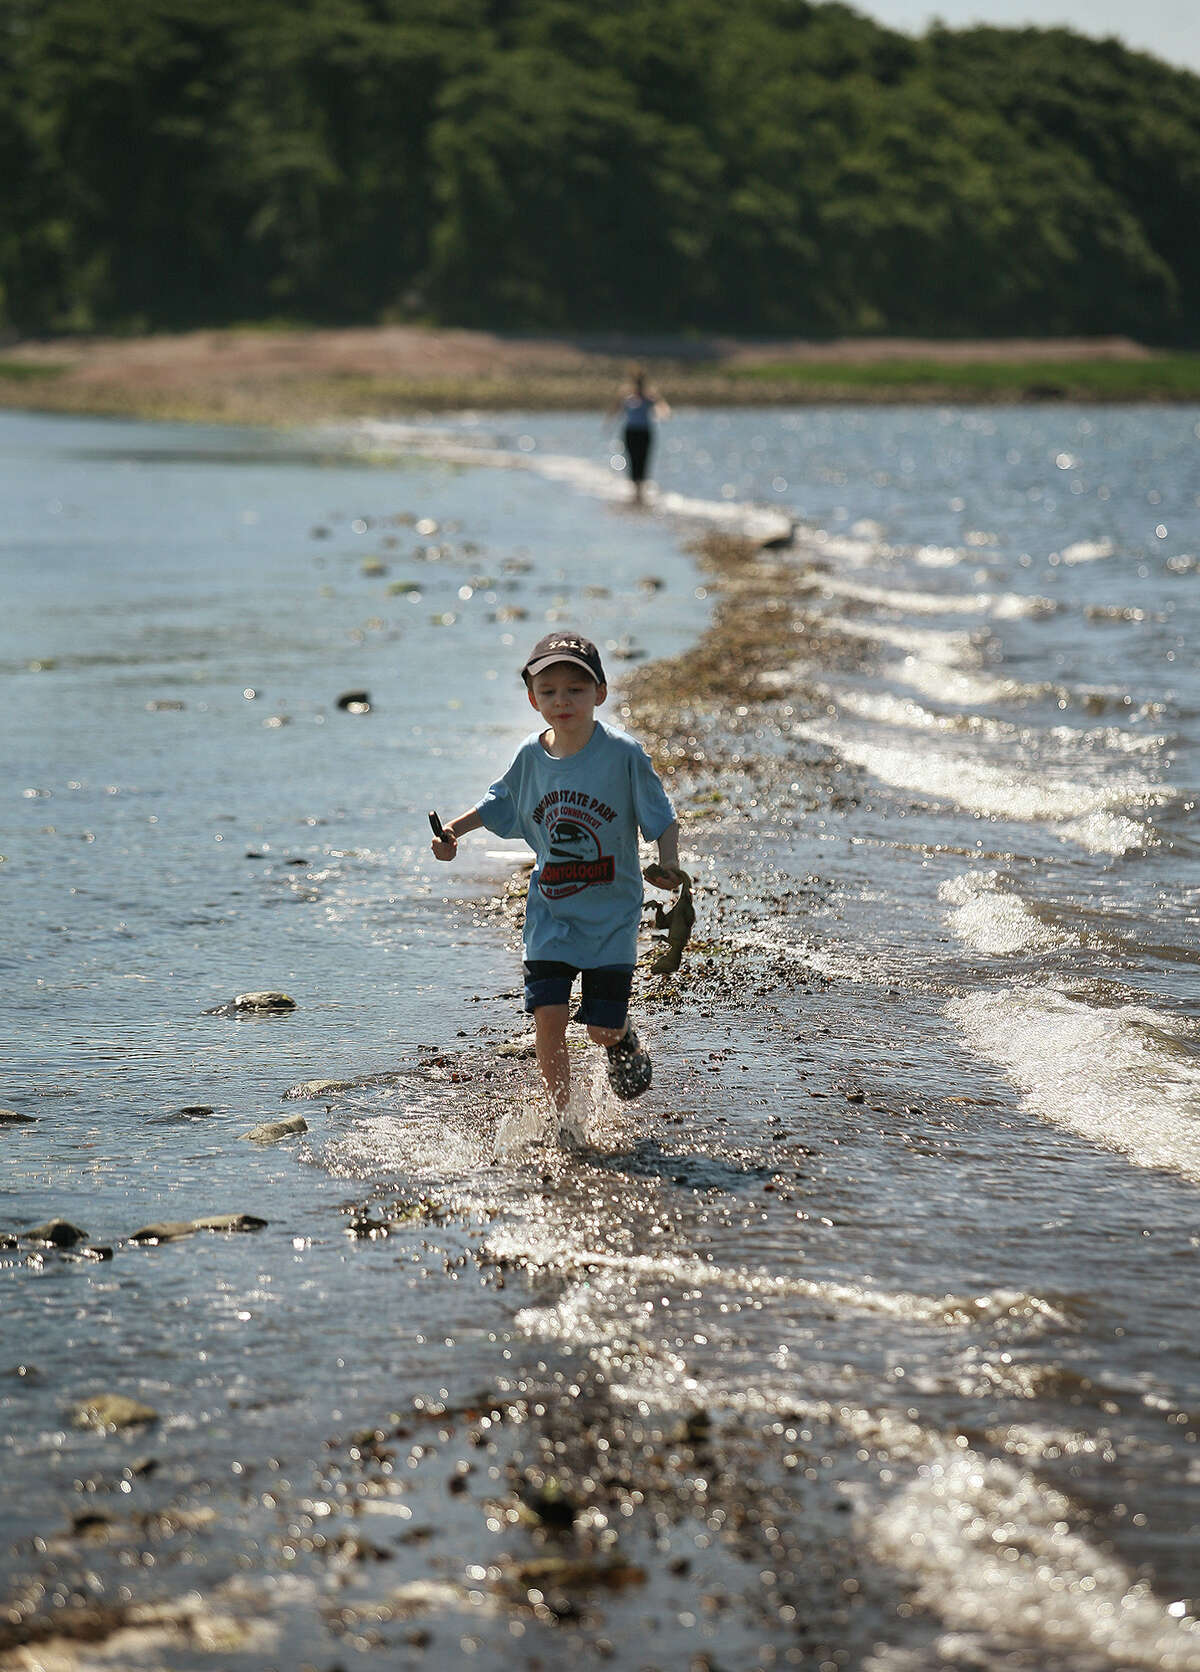 Michael Pogudin, 7, runs across the Charles Island sandbar followed by his mother, Kerry, Tuesday morning, July 5, at Silver Sands State Park in Milford. From New York, but summer residents of New Haven, the two were the last to cross ahead of the rising tide.